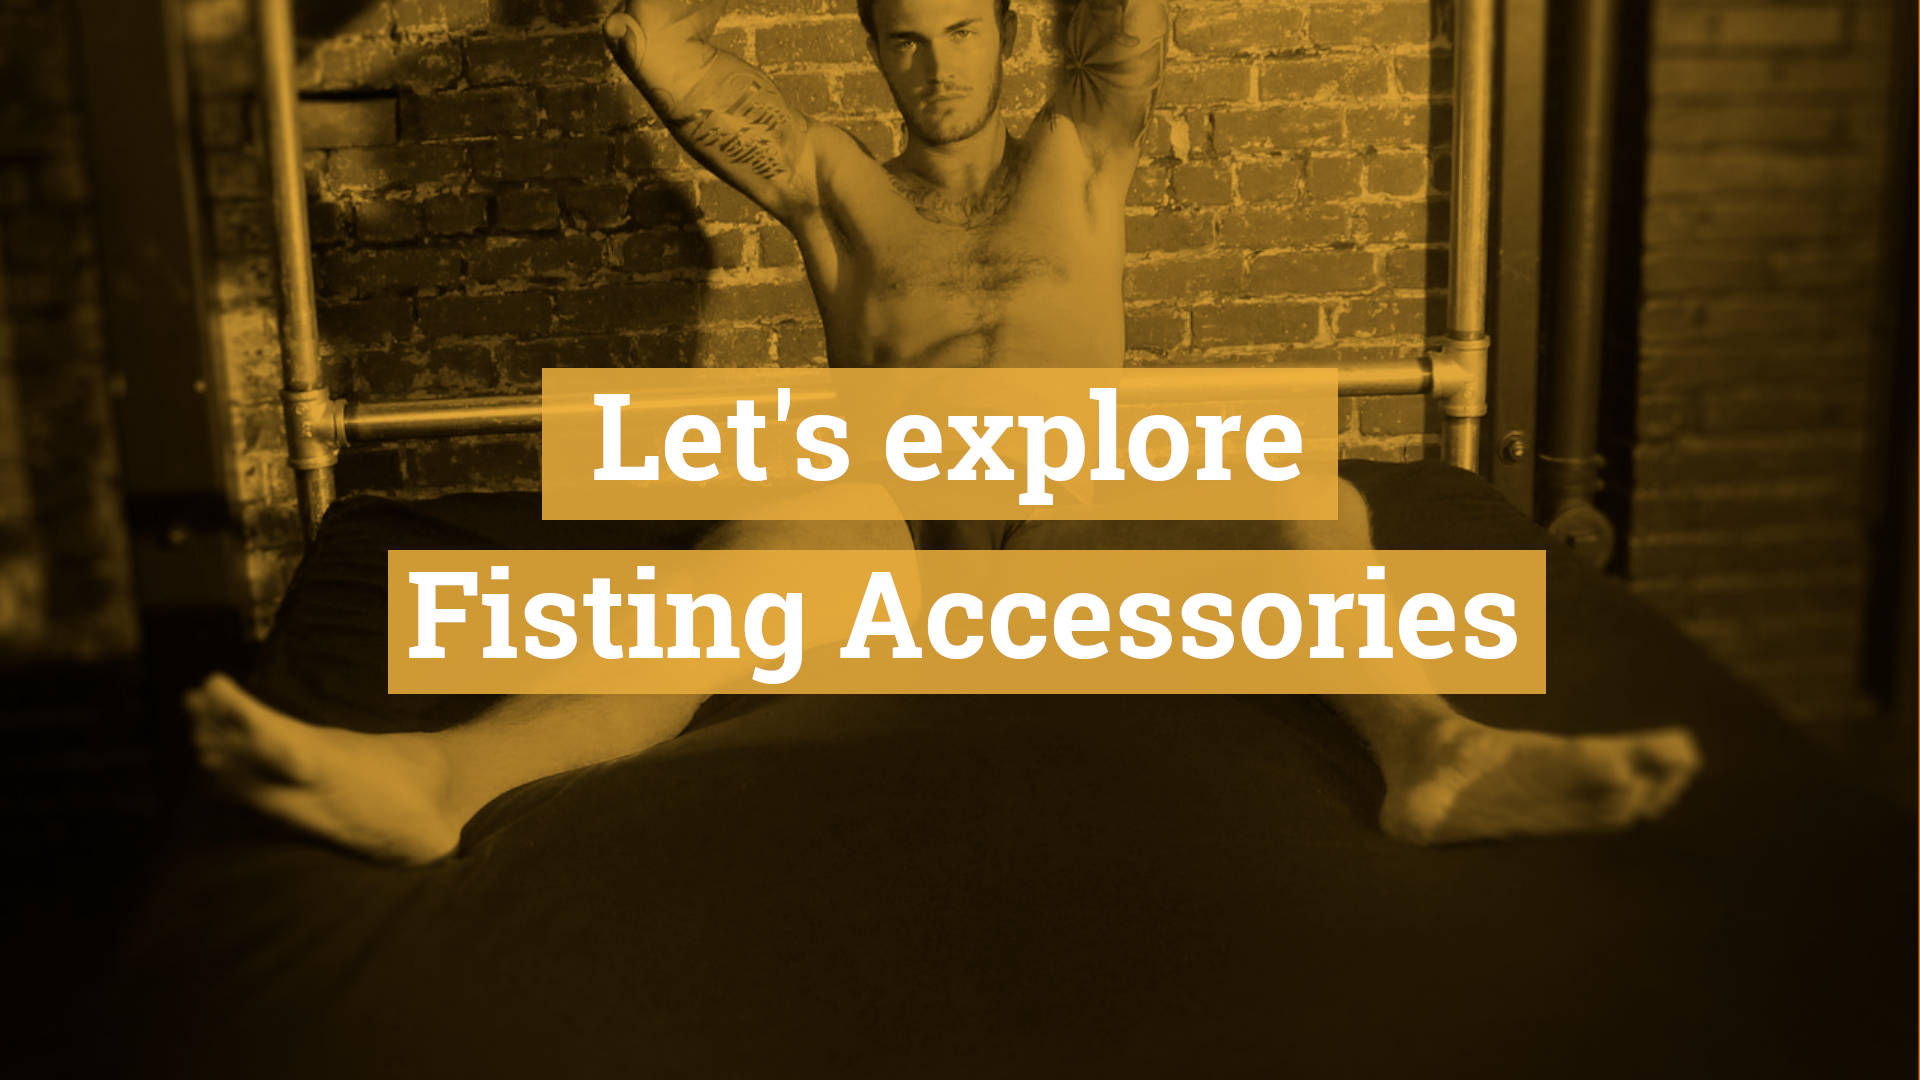 Let's explore Fisting Accessories – How to Protect Furniture and Textiles During a Fisting